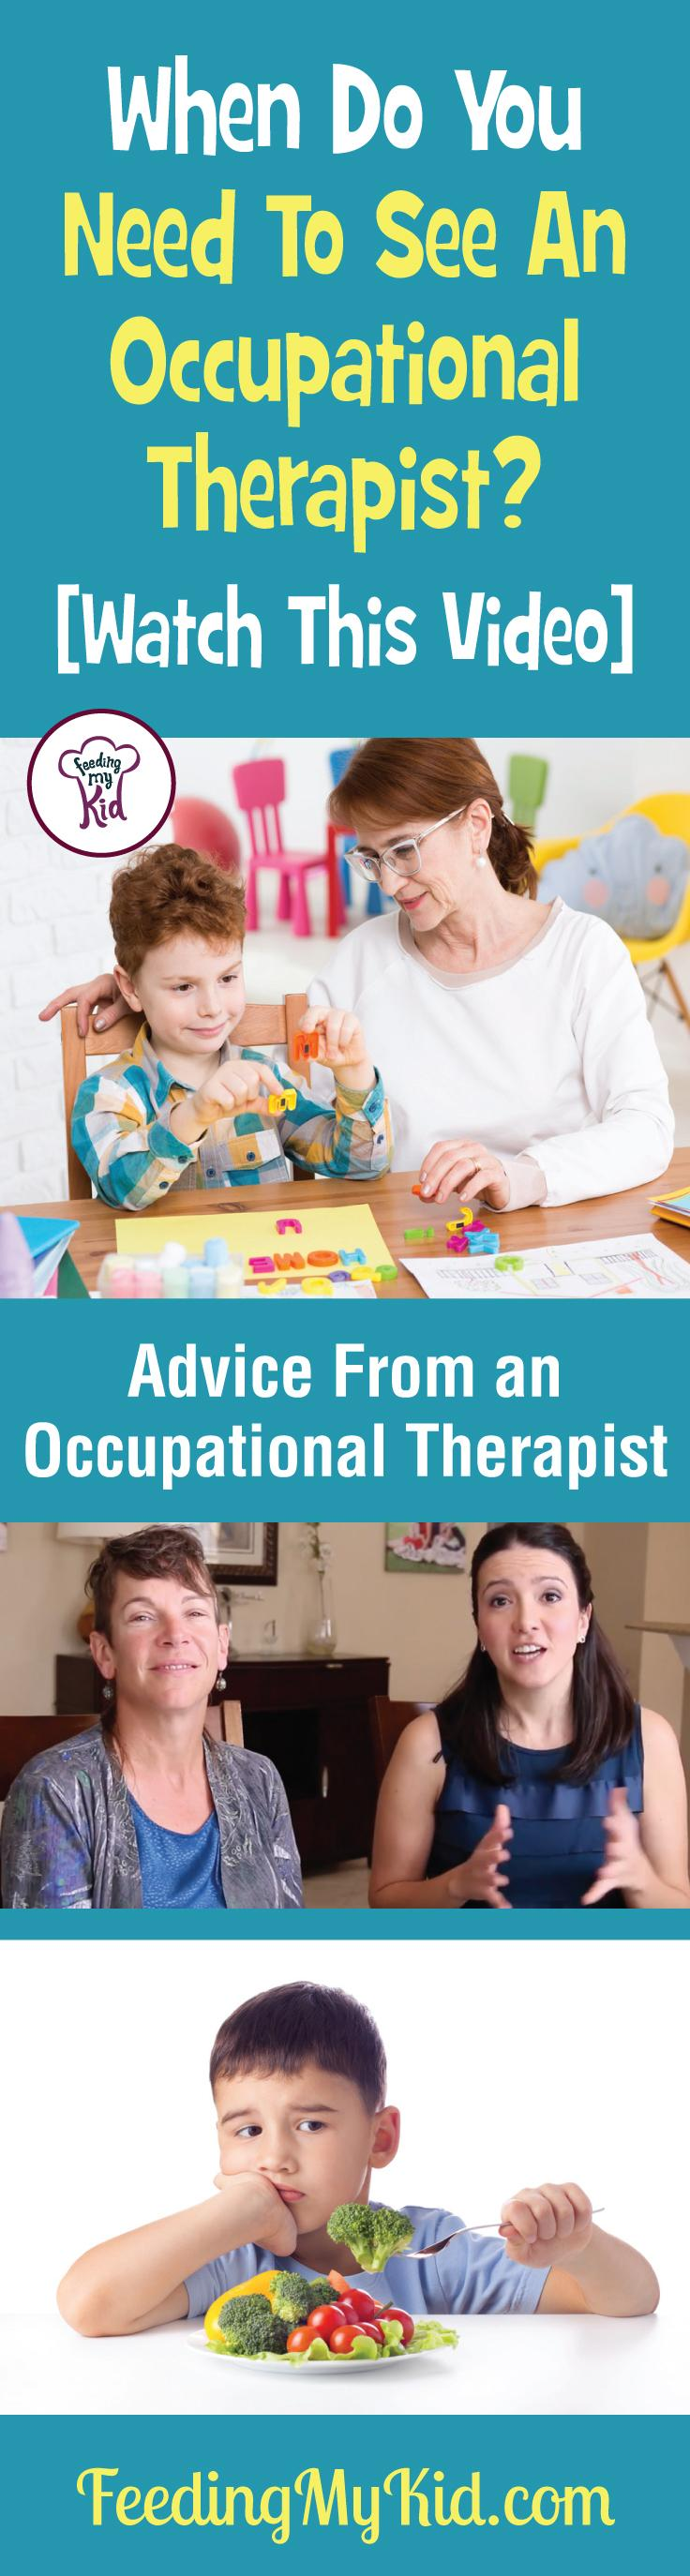 This is a must pin. Learn everything you need to know about occupational therapy for children from an occupational therapist. Feeding My Kid is a filled with all the information you need about how to raise your kids, from healthy tips to nutritious recipes. #FeedingMyKid #OccupationalTherapist #advice #kidshealth